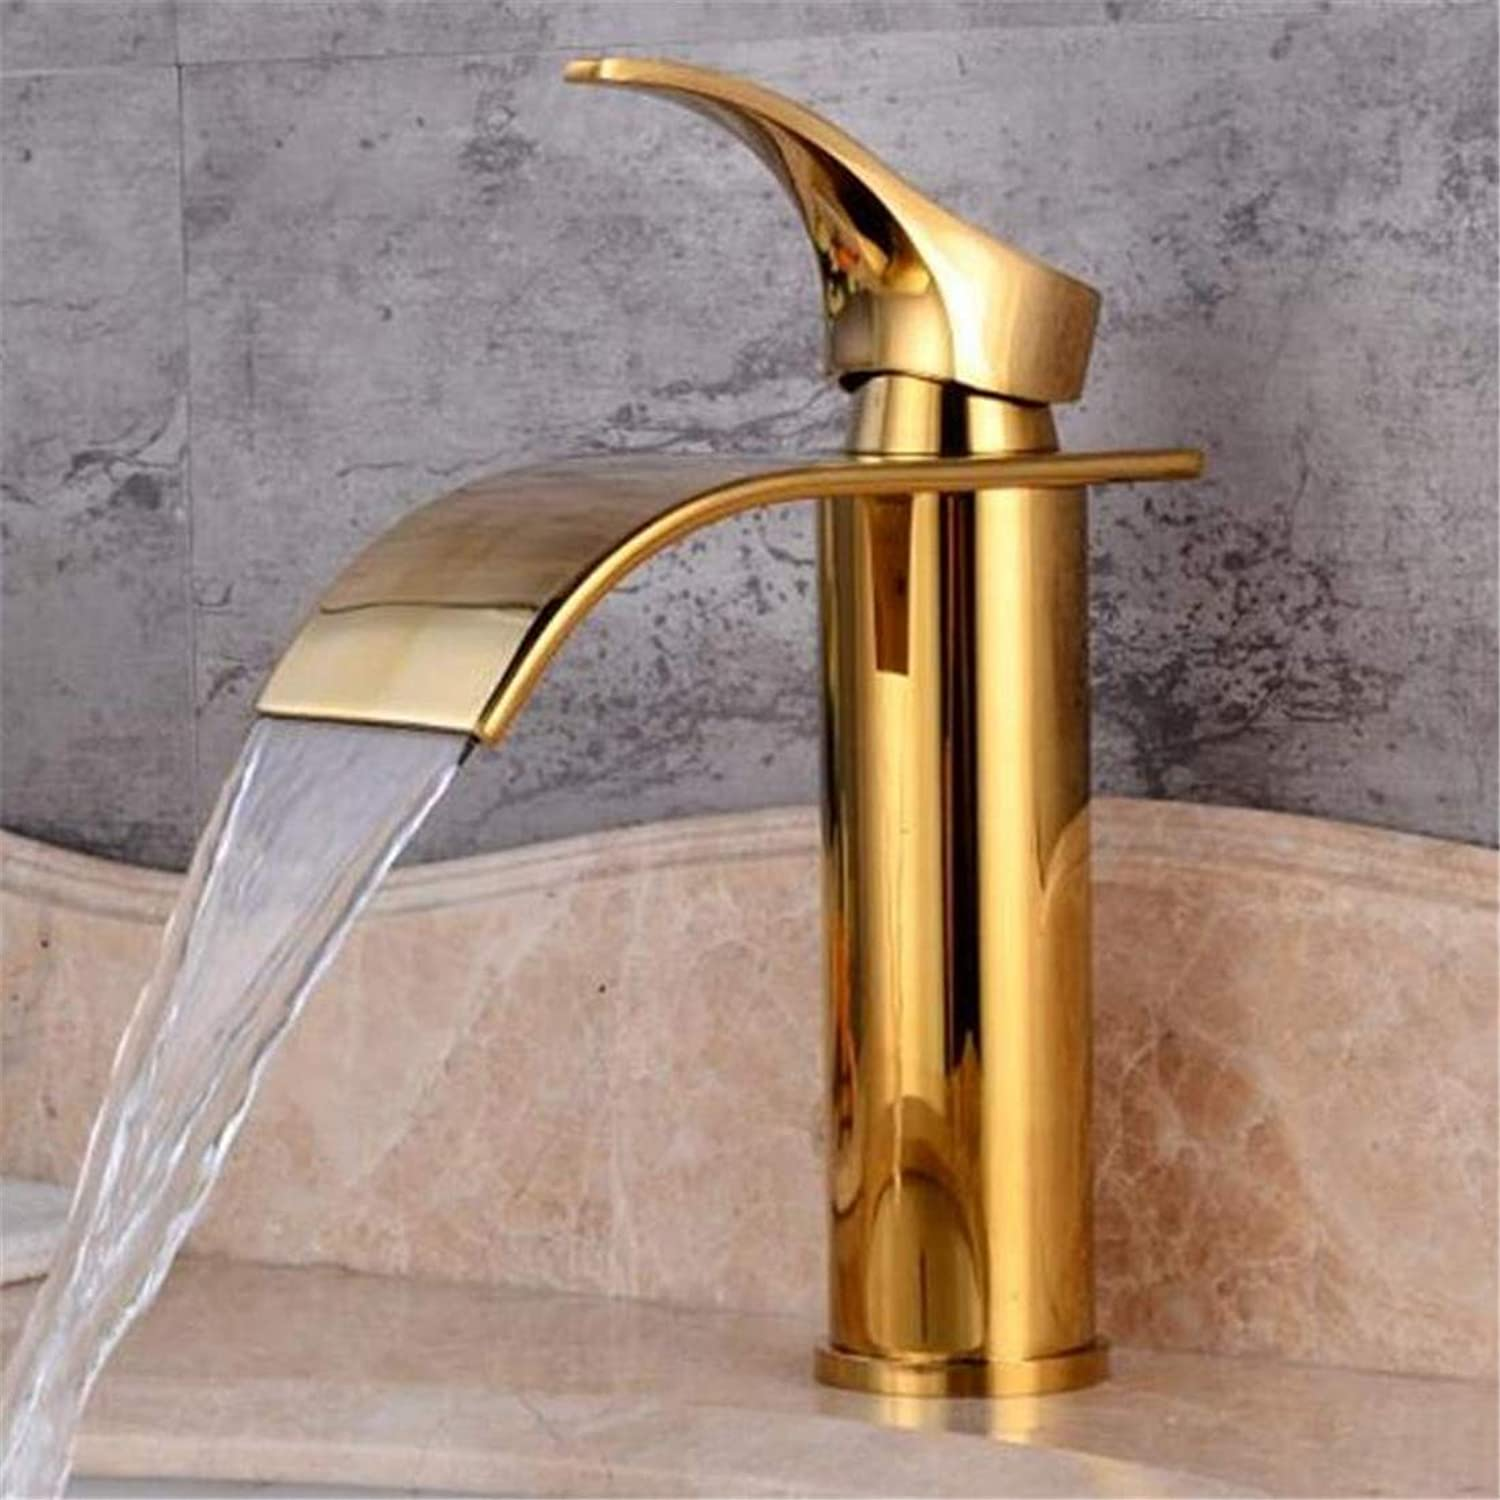 Faucet Luxury Plated Kitchen Bathroom Faucet Faucet Mixer Bathroom Sink Faucet Waterfall Brass Basin Water Mixer Crane Hot and Cold Faucet Deck Mounted